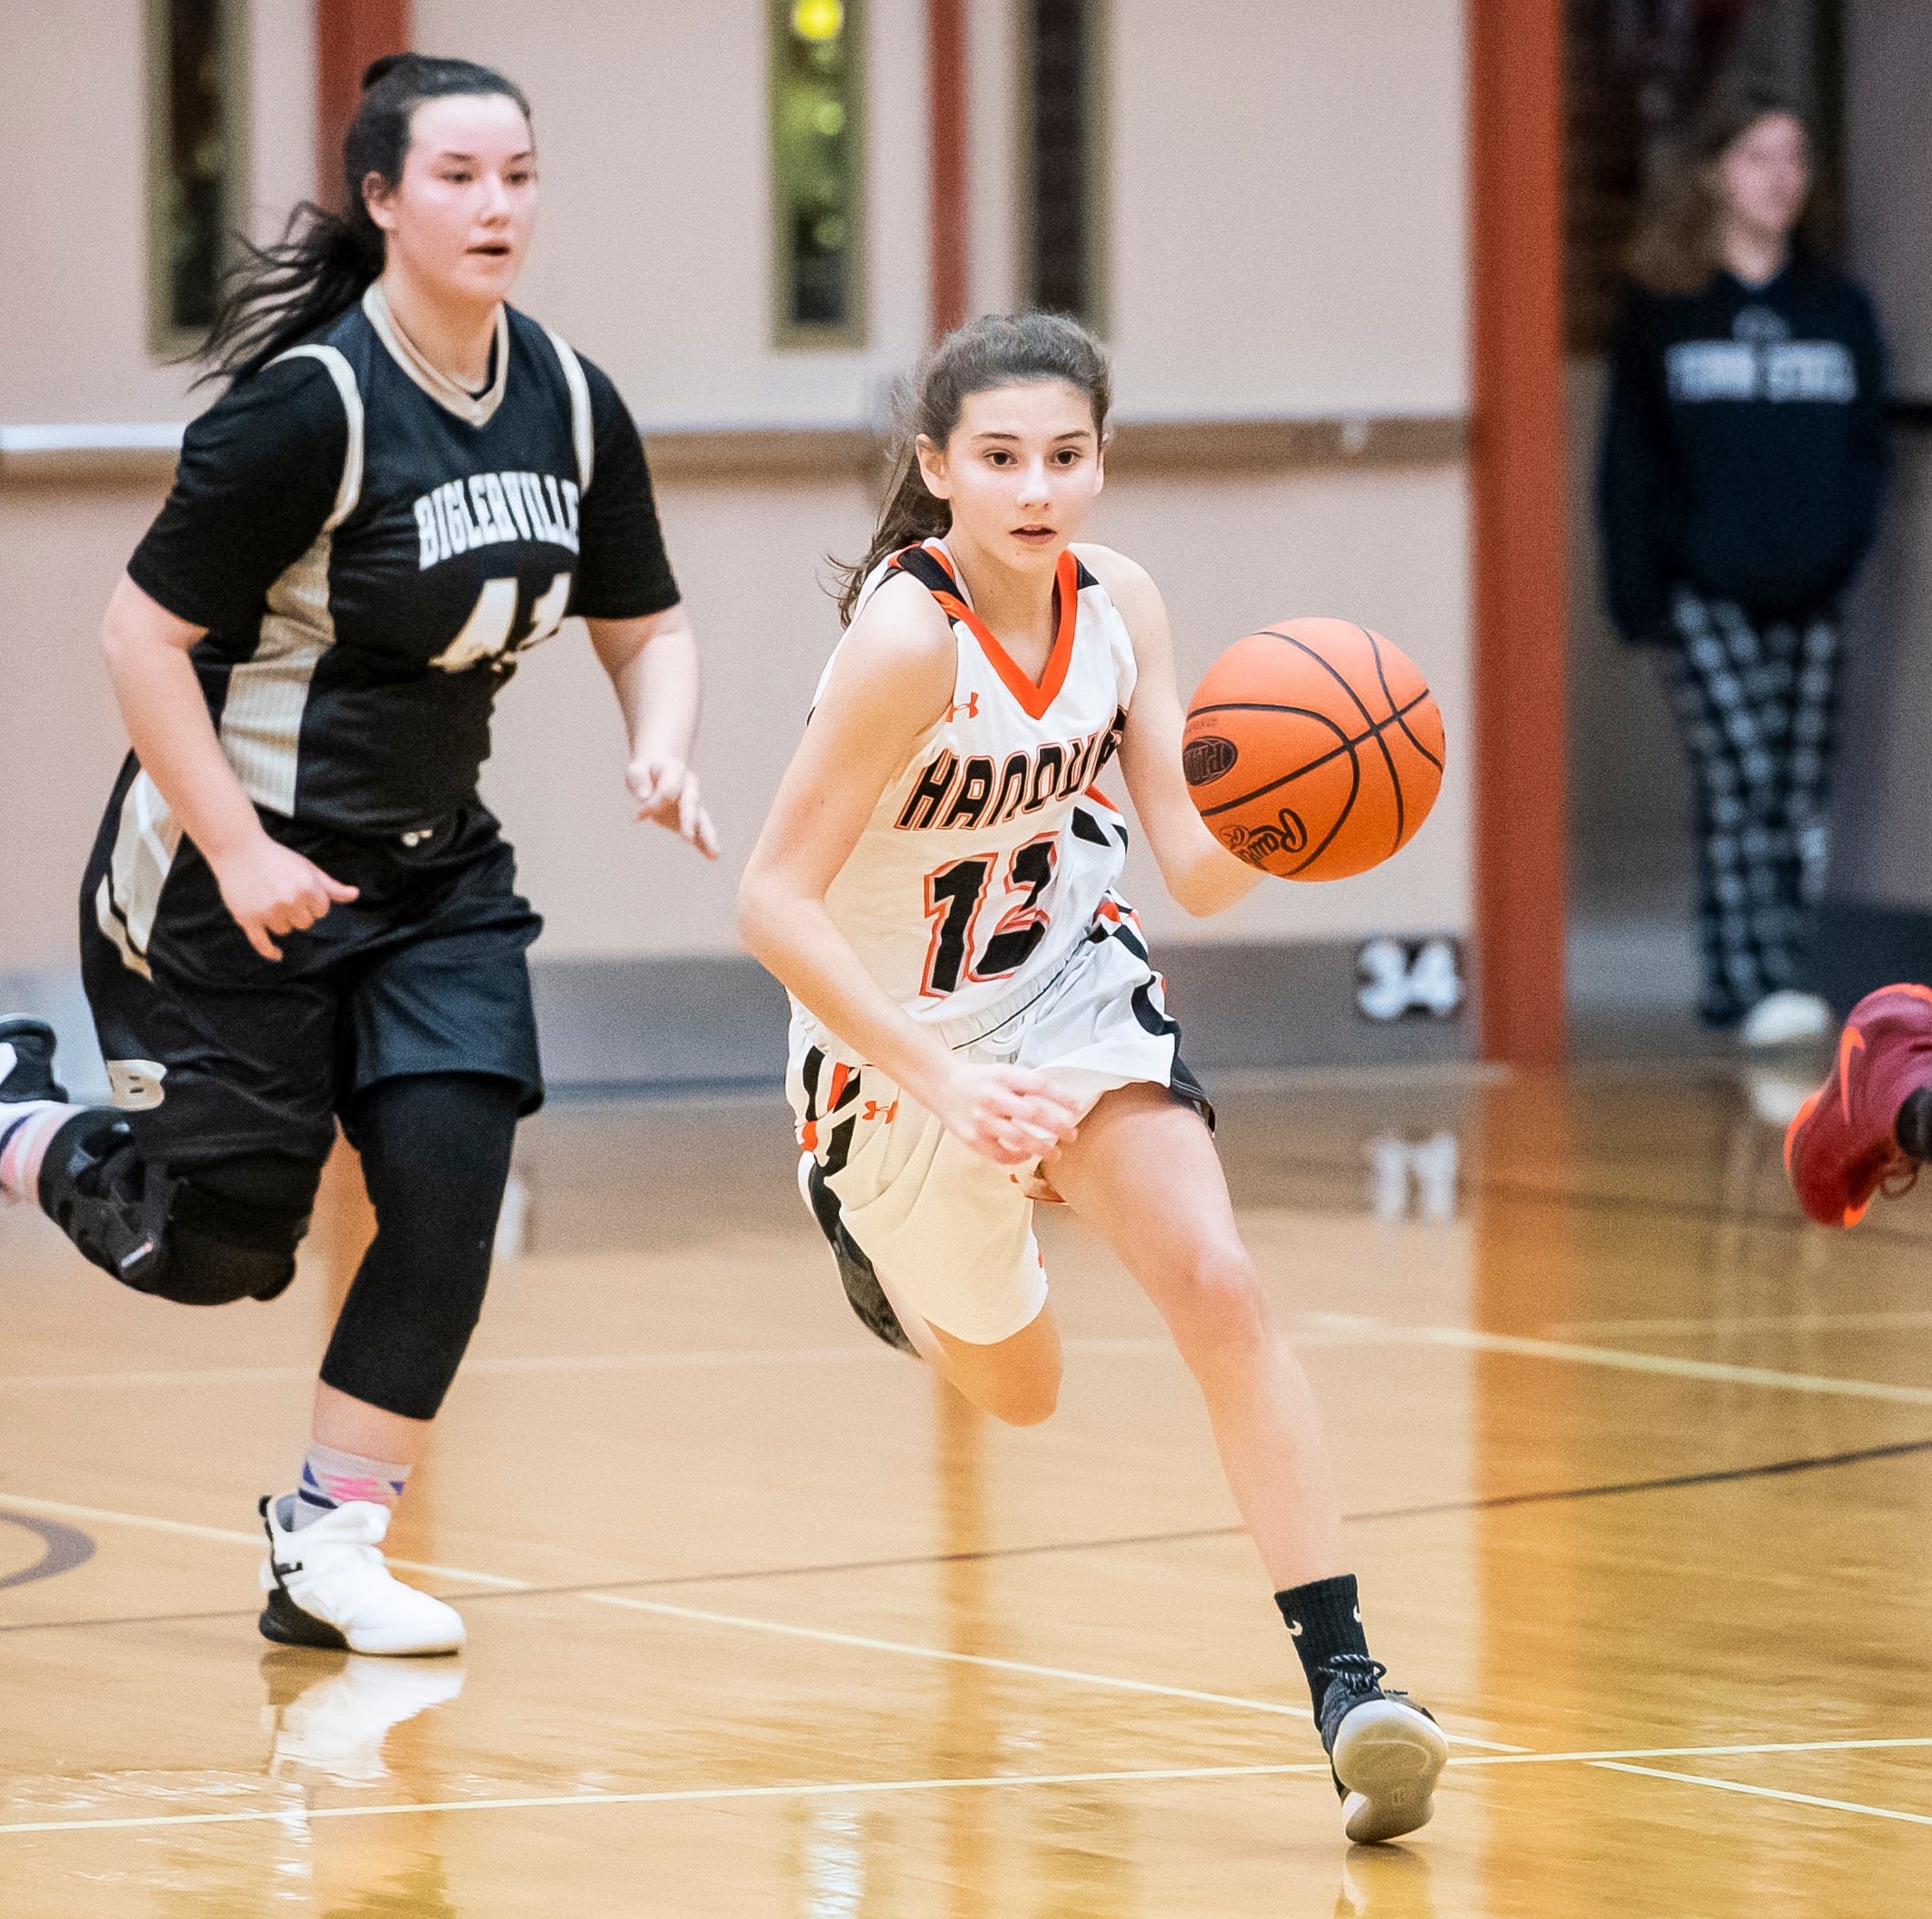 'Fearless' freshmen guard talent fueling YAIAA girls' basketball teams